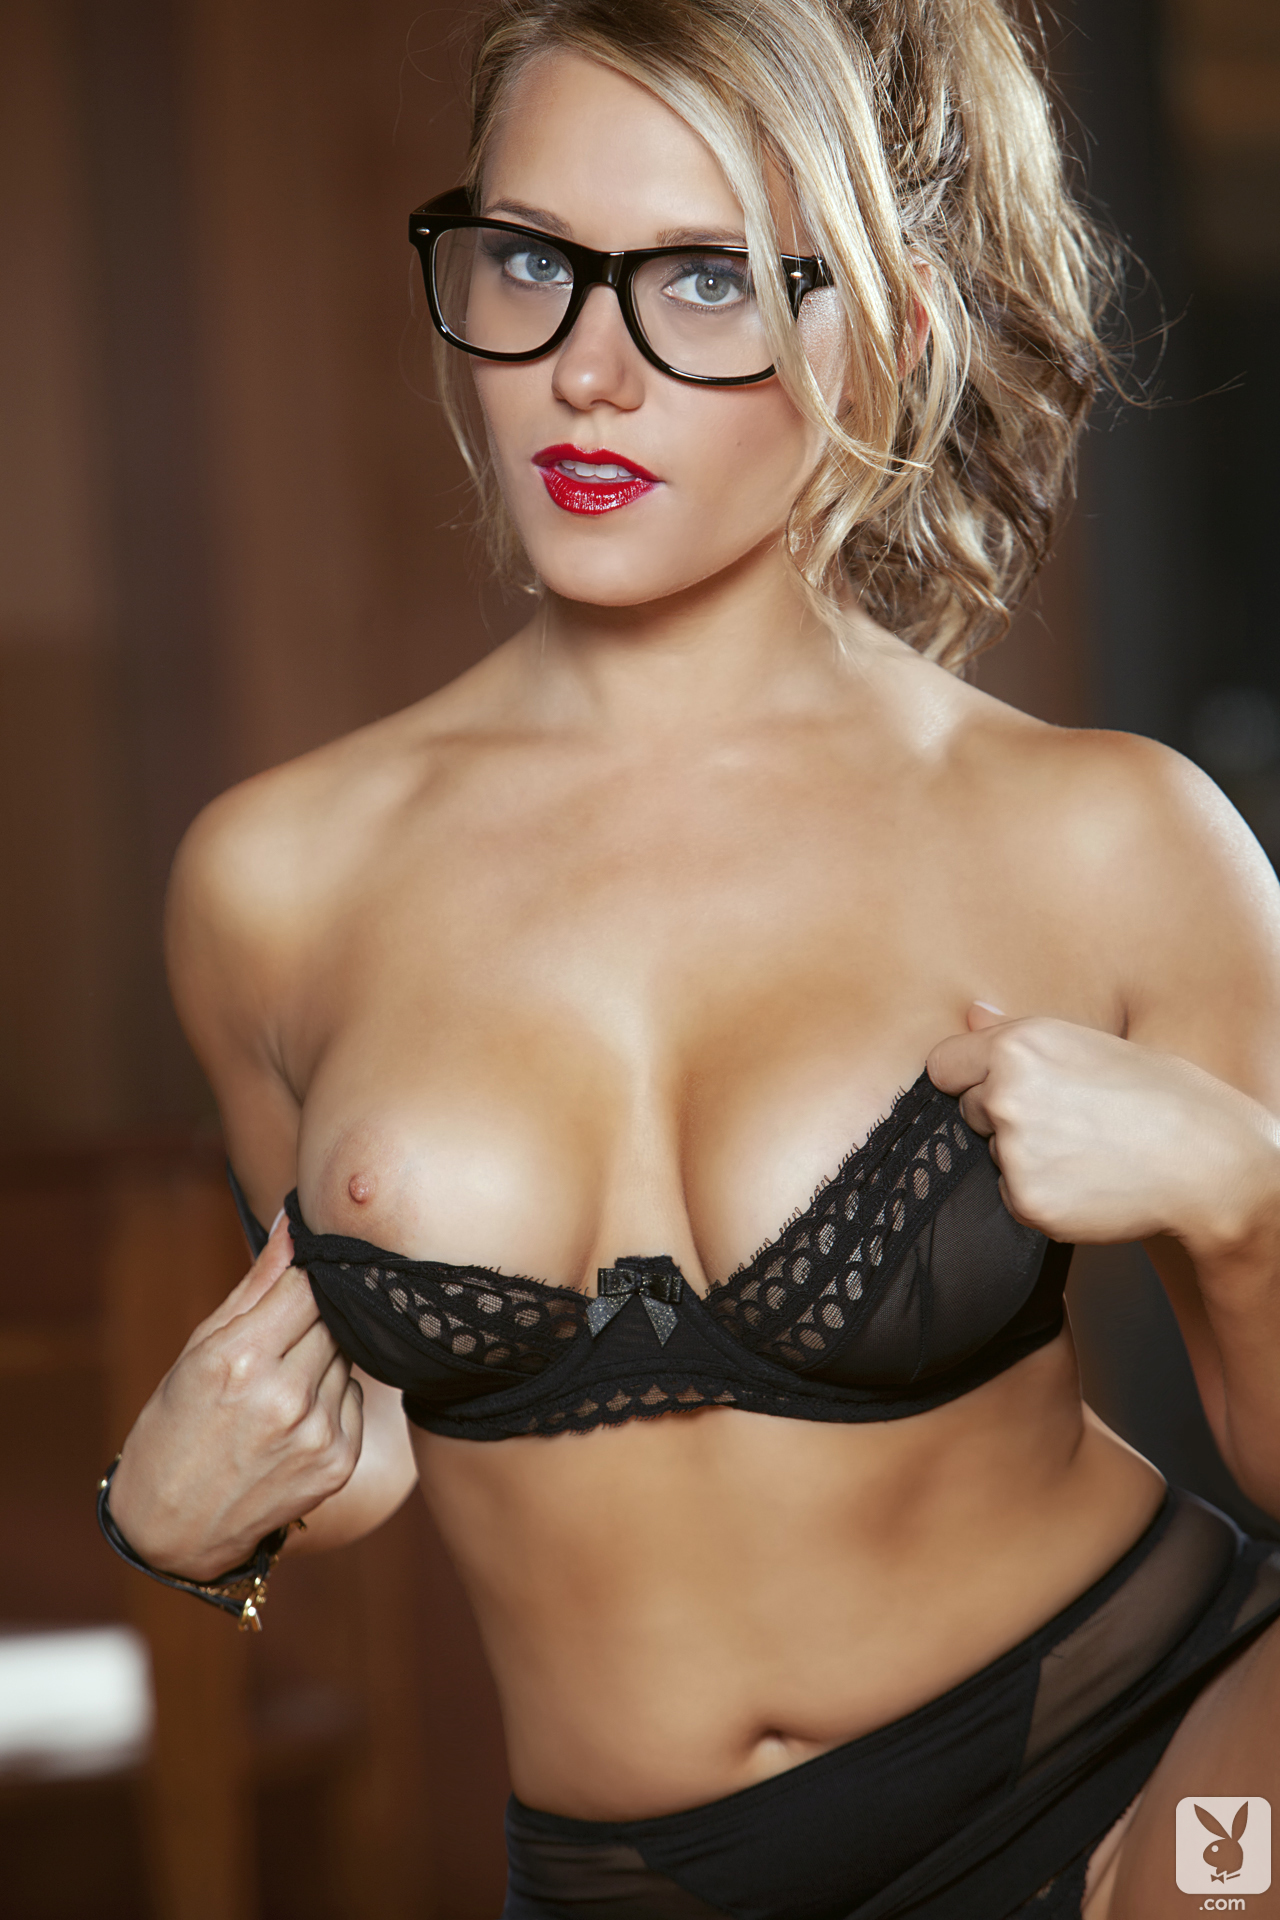 nude-girls-in-glasses-boobs-mix-vol2-71